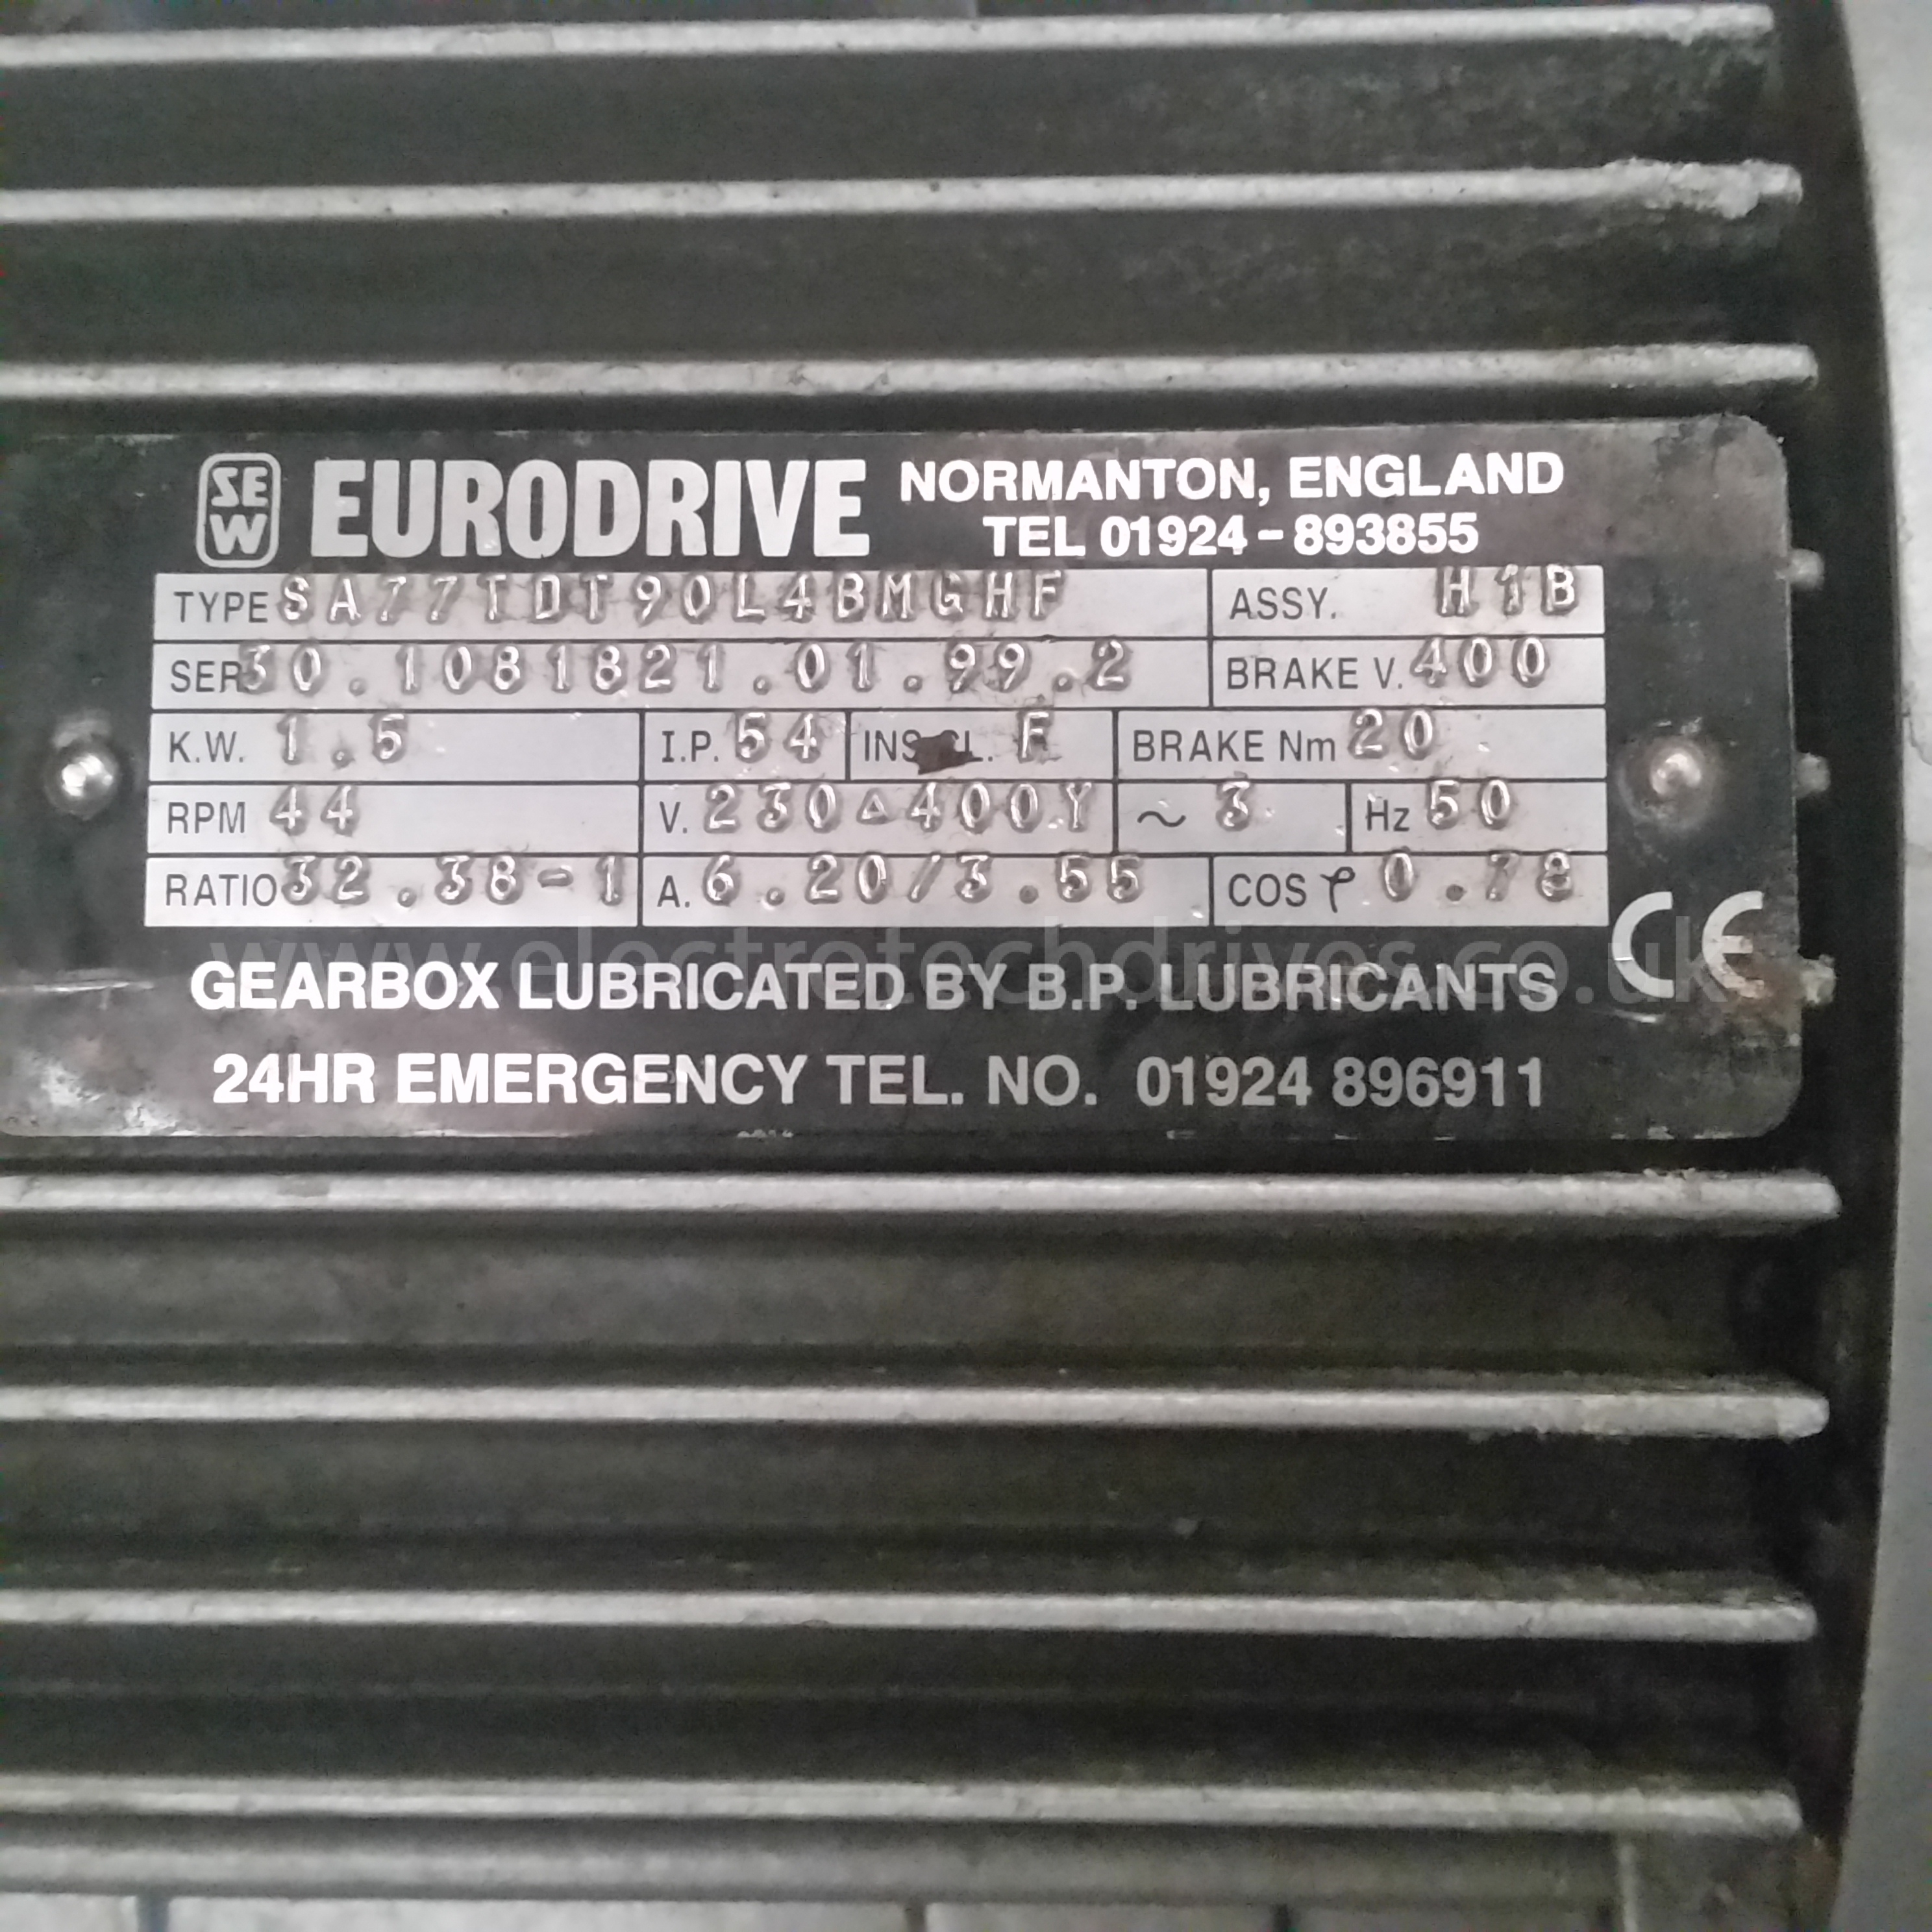 Sew Eurodrive Geared Motor Sa77dt90l4 Bmfhf 50mm Bore With